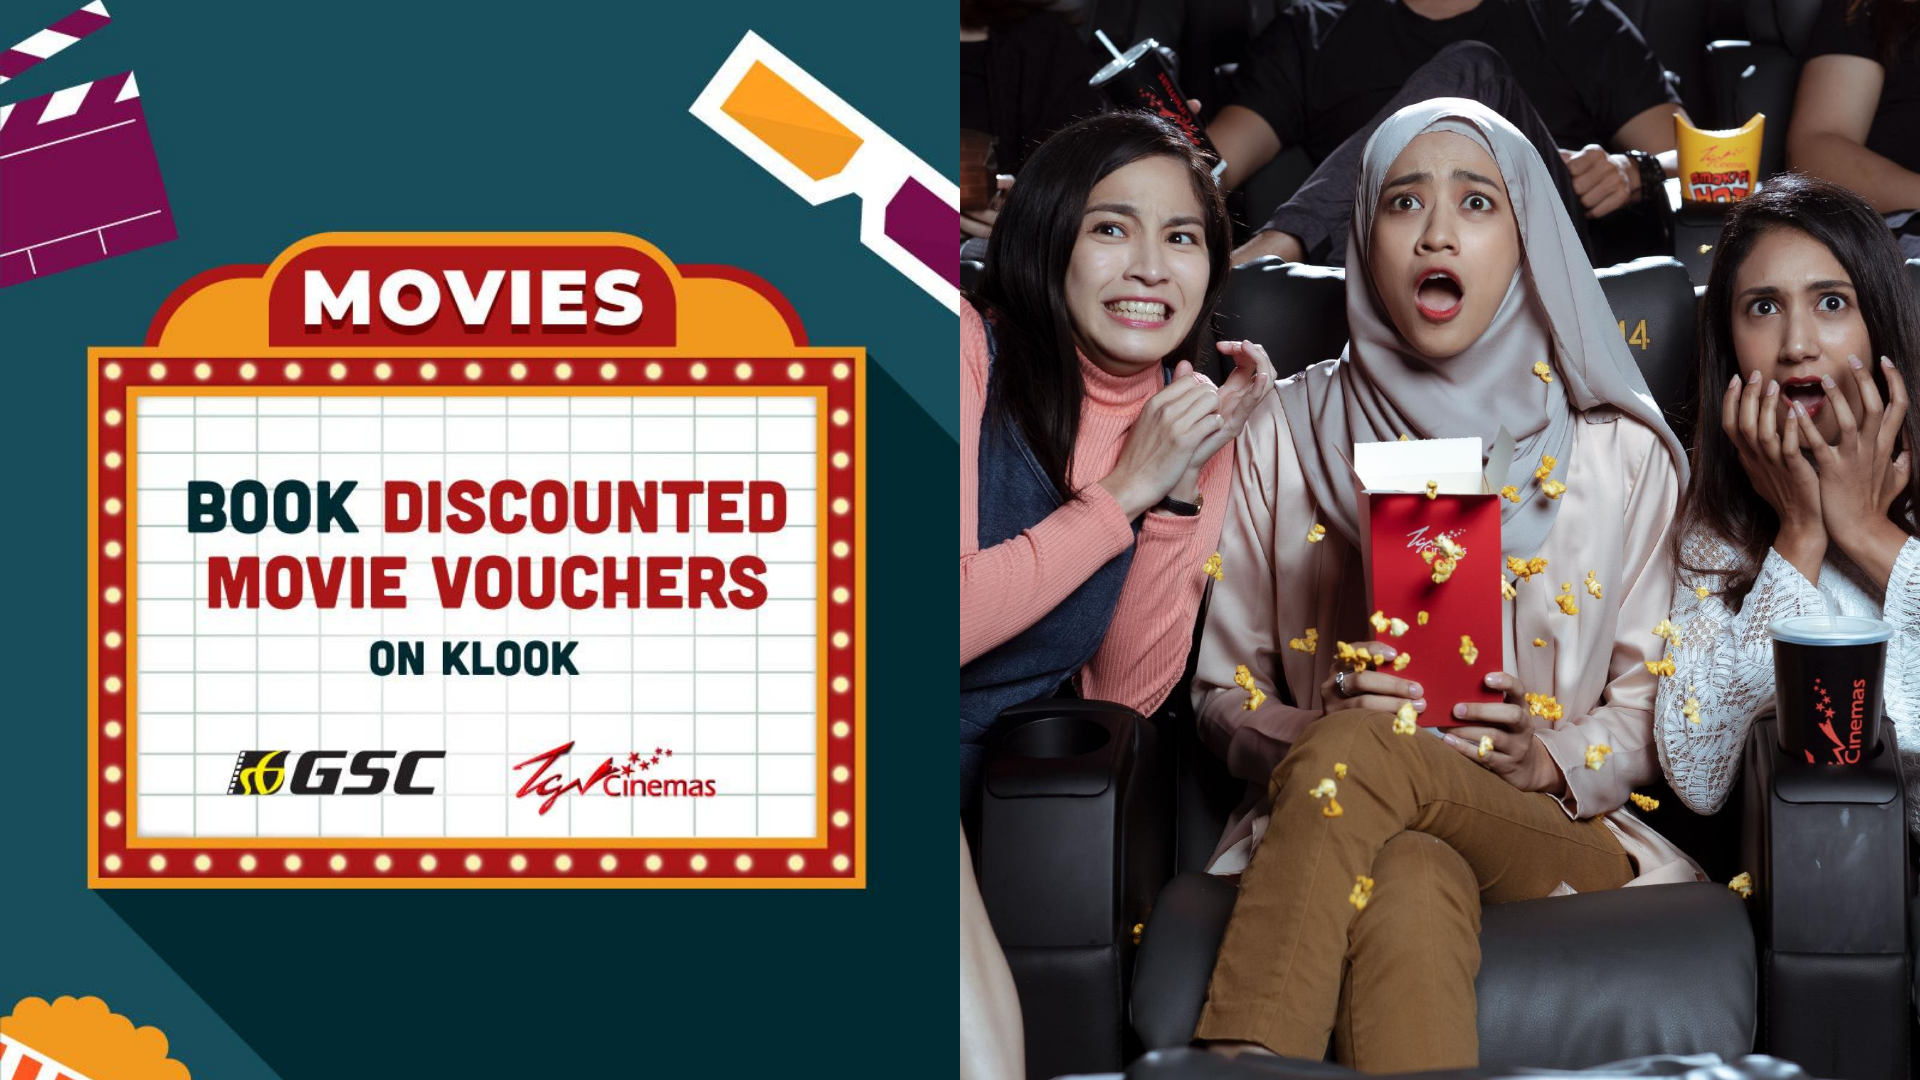 [Special Offer] Save Up To 40% When You Book GSC And TGV Cinemas' Movie Tickets On Klook!